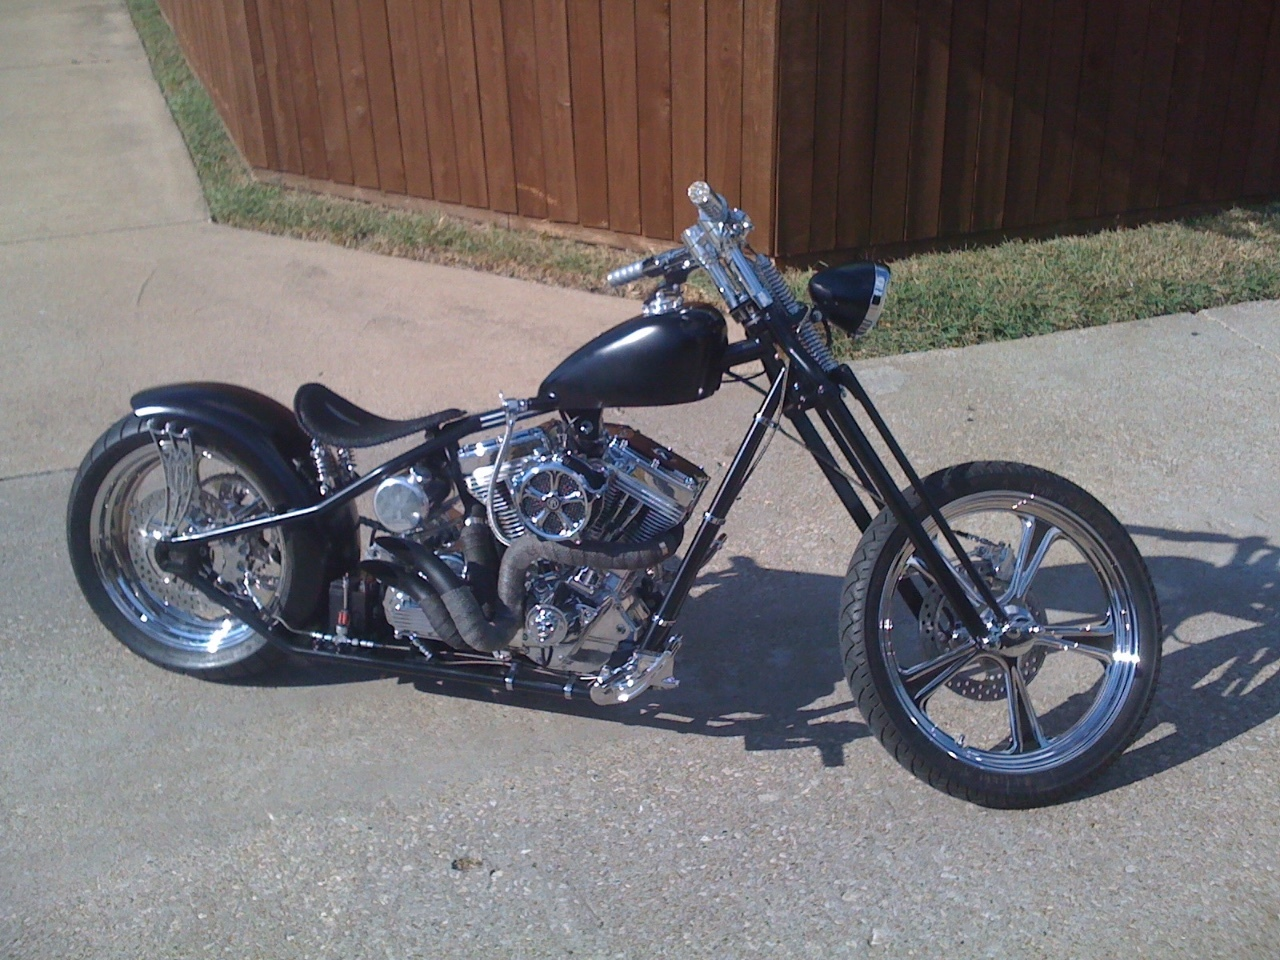 5c101ffb7b22cb61286e59eb oregon 3,694 motorcycles near me for sale cycle trader